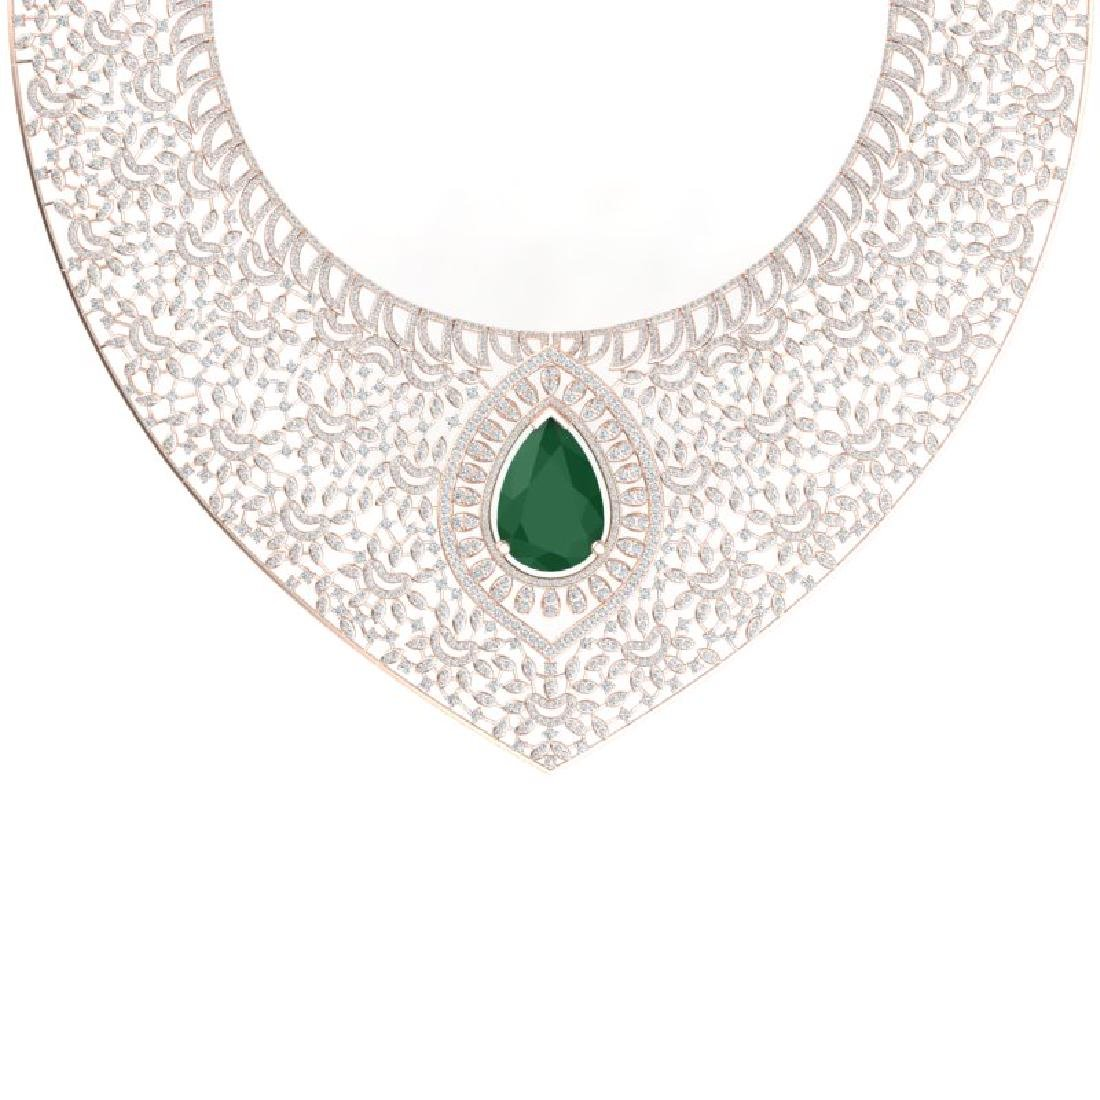 63.93 CTW Royalty Emerald & VS Diamond Necklace 18K - 2